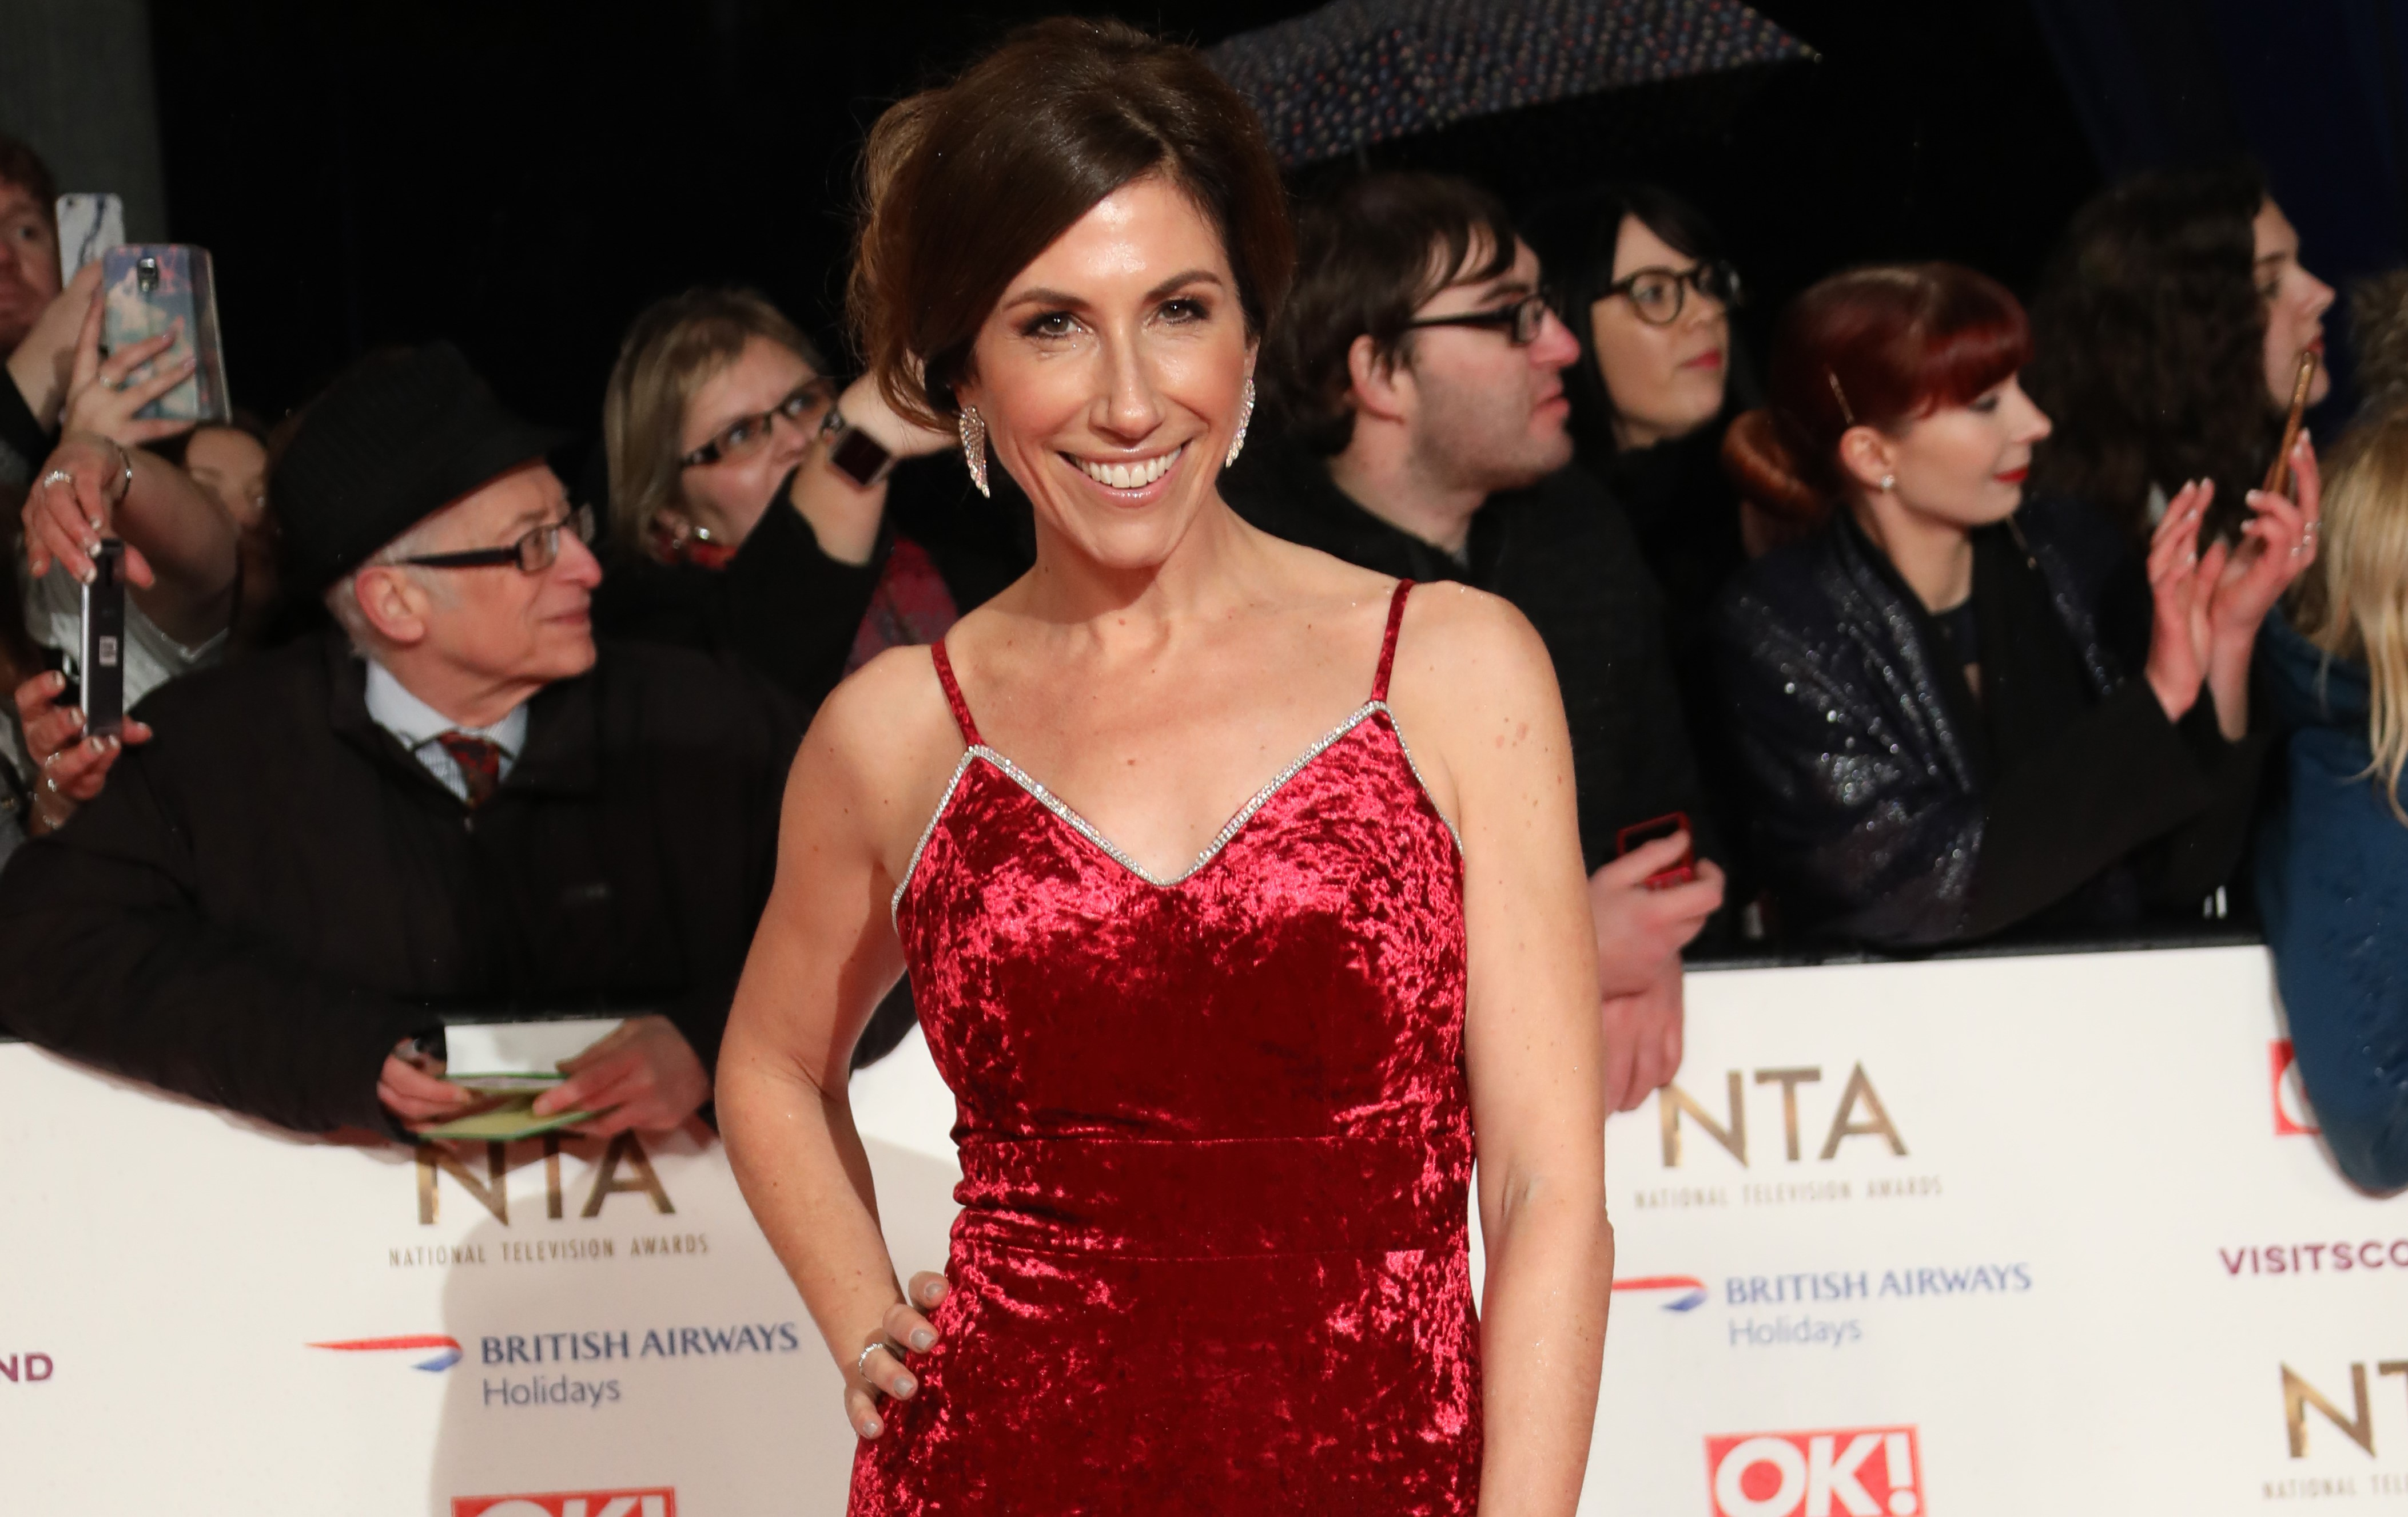 Emmerdale star Gaynor Faye reveals her next project is a theatre show